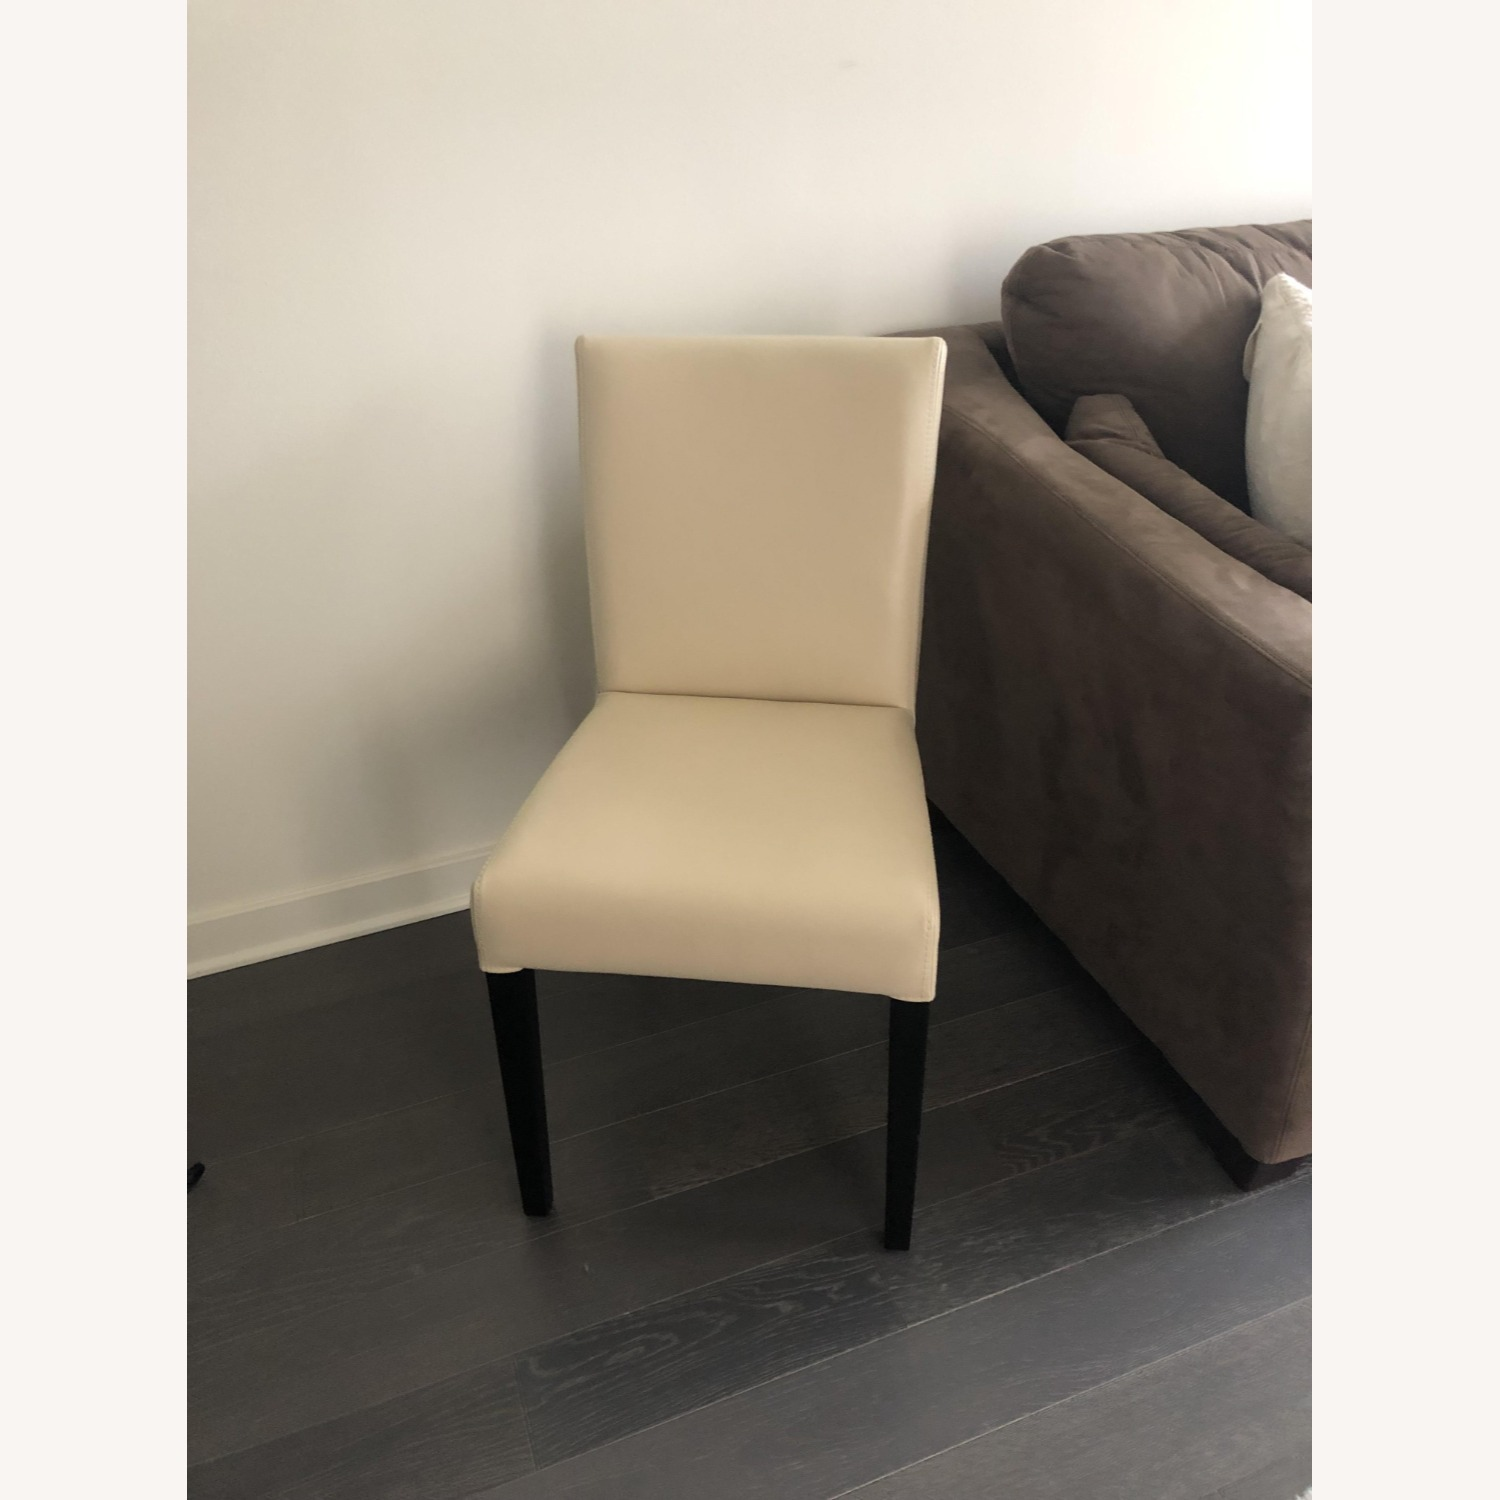 Crate & Barrel Lowe Ivory Leather Dining Chair - image-3